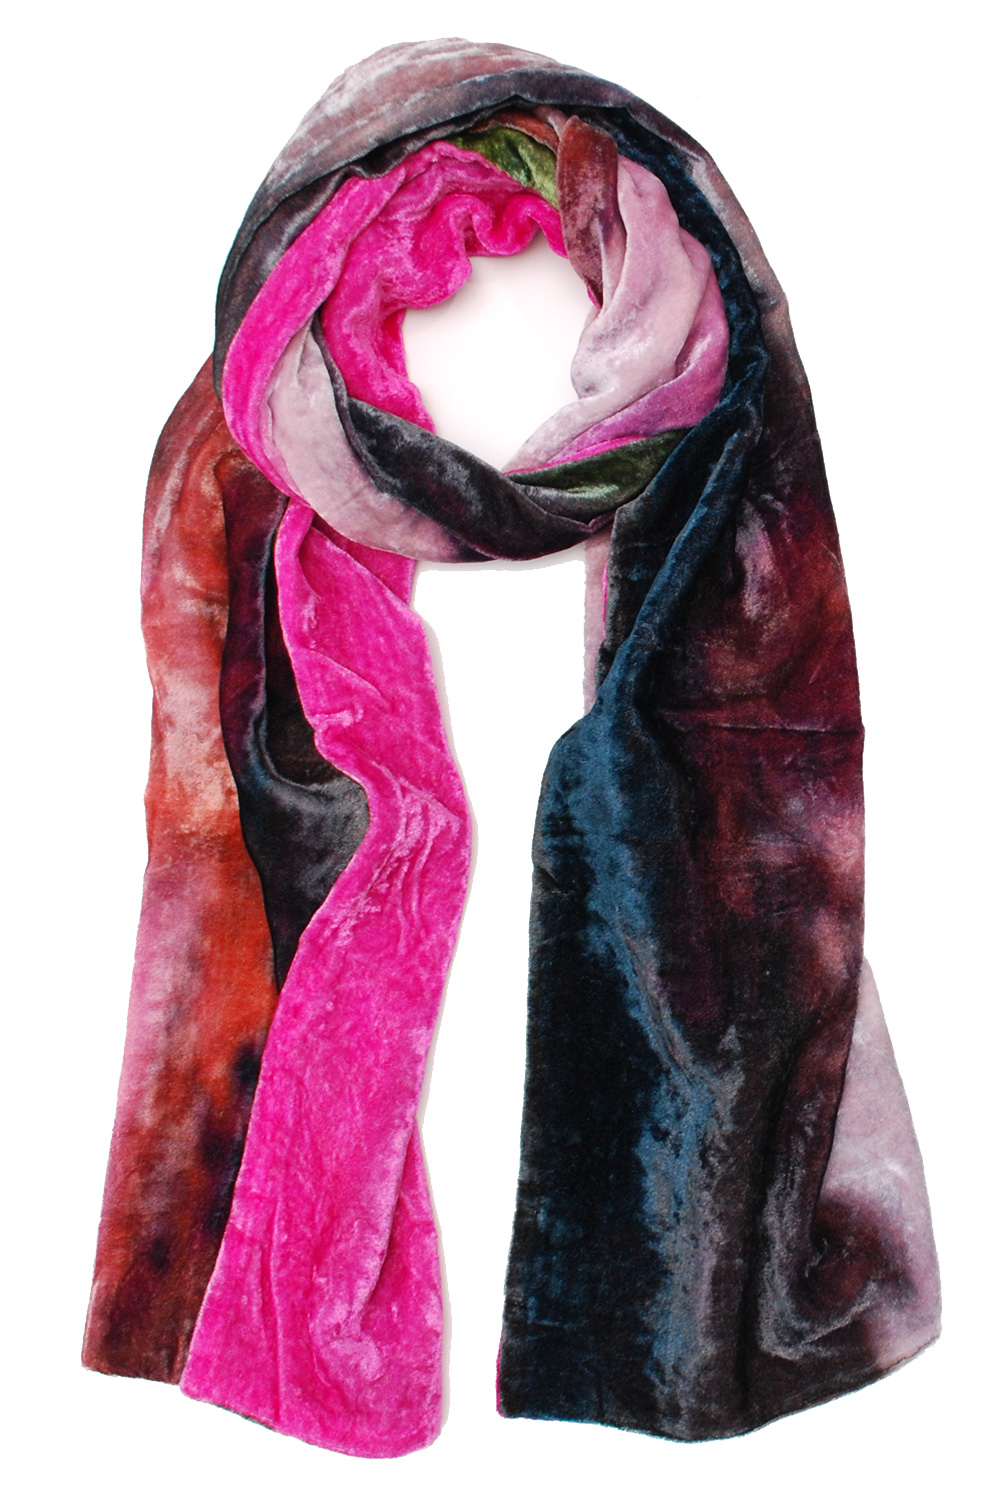 VELVET CRUSH     INSPIRED BY THE VERY FIRST PIECE FROM ELIZABETH GILLETT's inaugural collection - our gaia velvet oblong is made from exclusive watercolor artwork. Wonderfully soft and luxe its a sophisticated way to add color to a winter jacket.